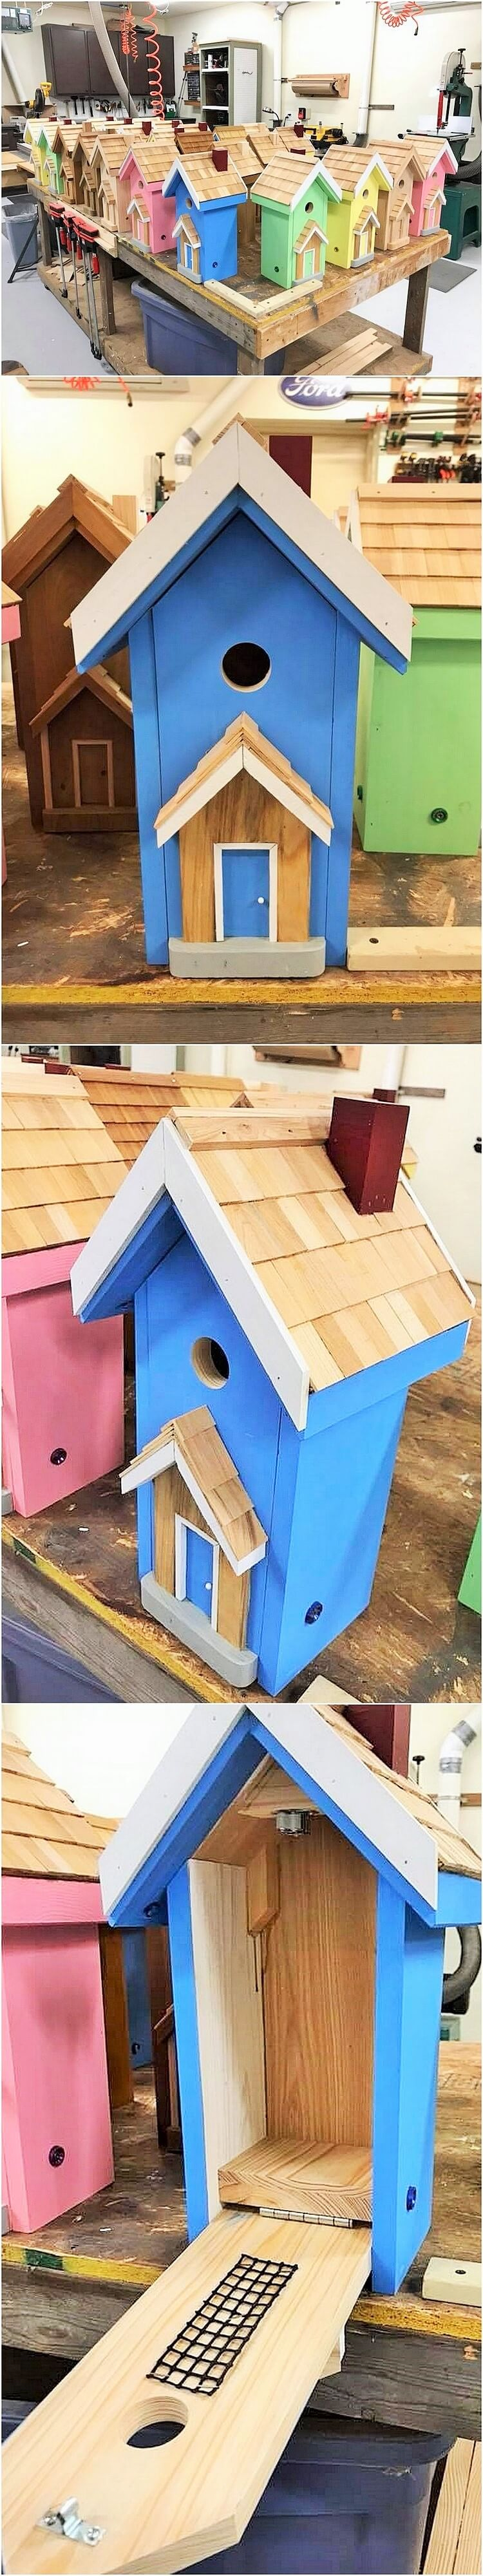 wooden brid house